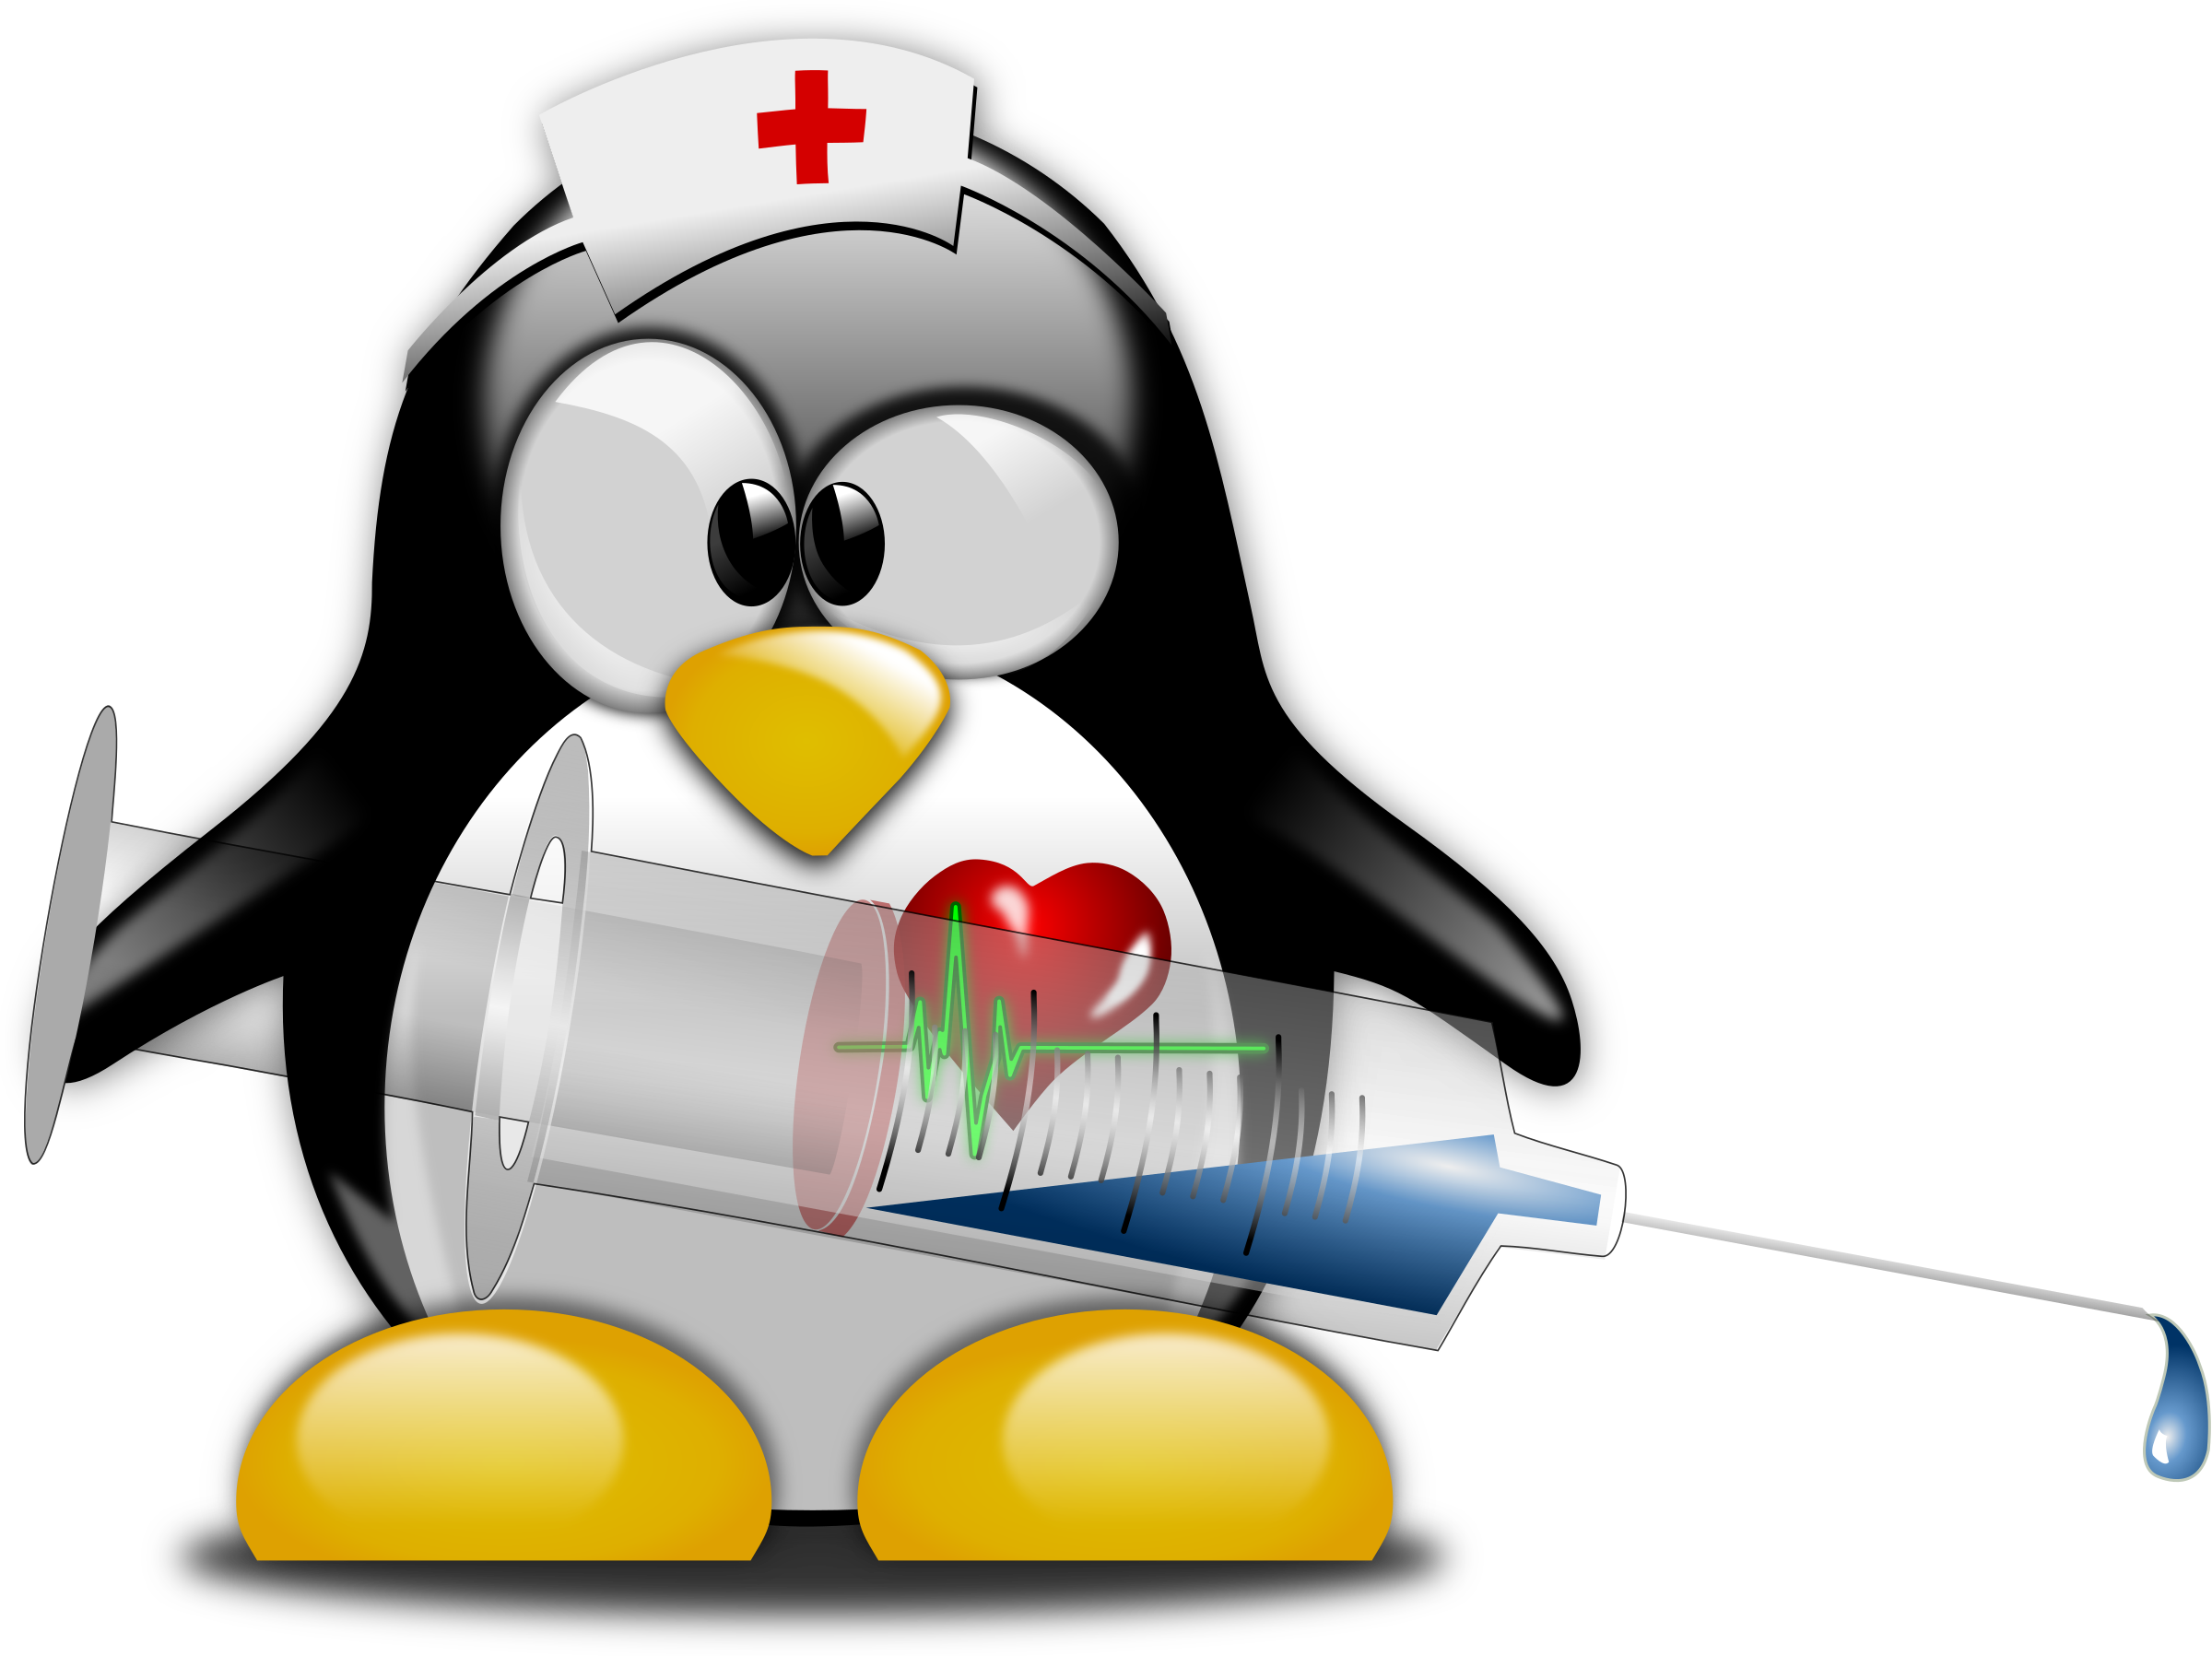 Nurse cross clipart banner black and white download Clipart - Tux Nurse 1 banner black and white download